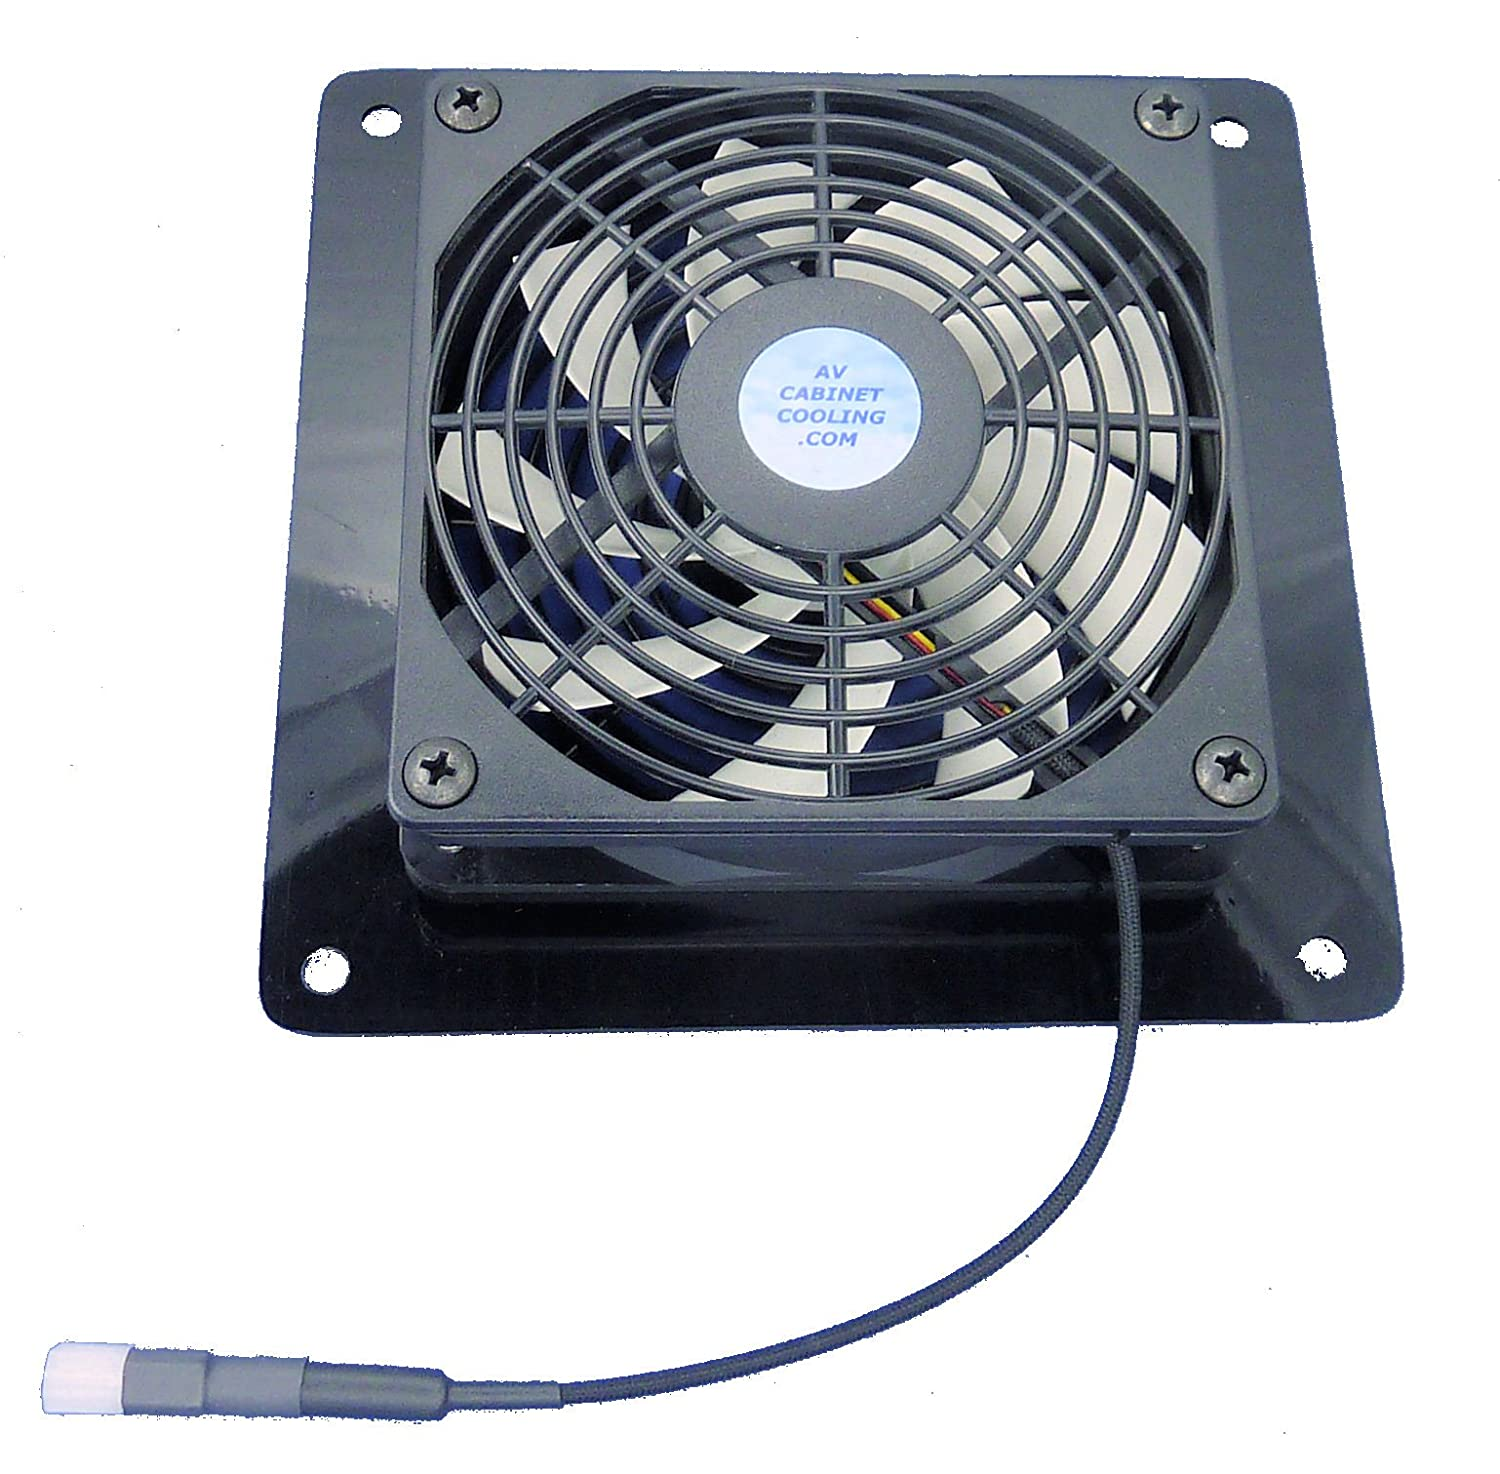 Amazon.com: AV/Computer Cabinet Mega-fan Exhaust fan with ...